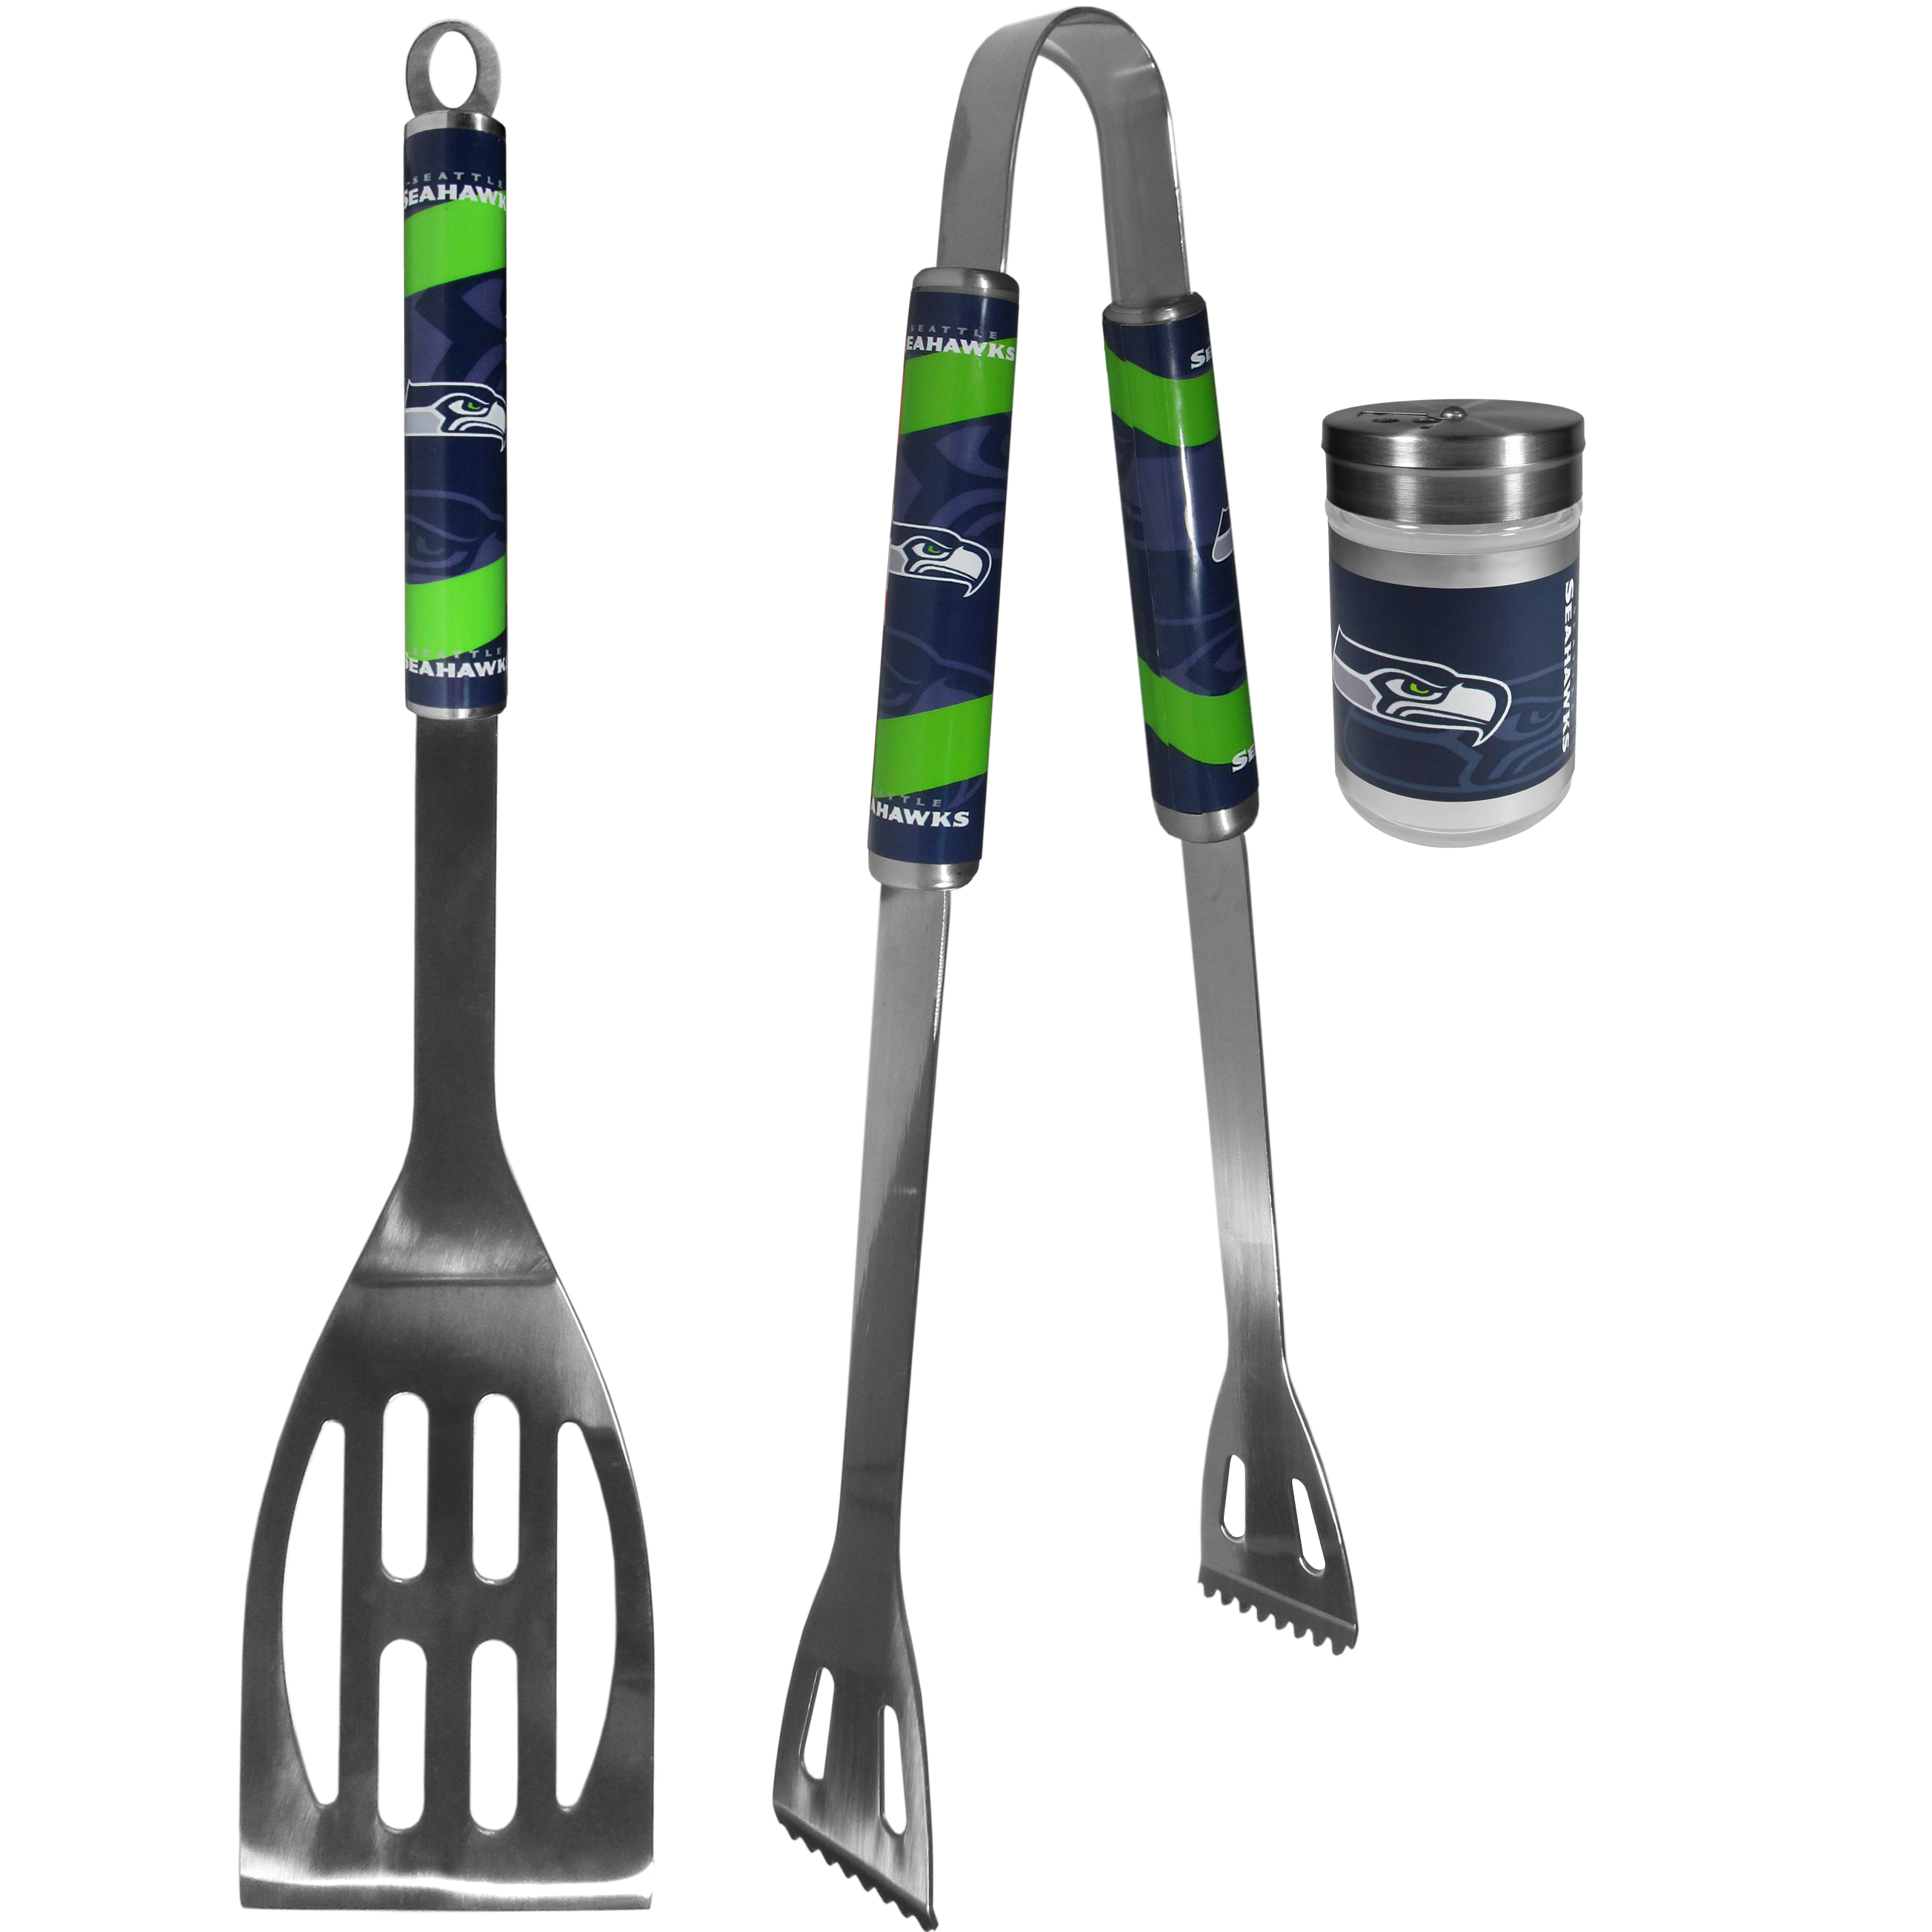 BBQ Tools with Season Shakers